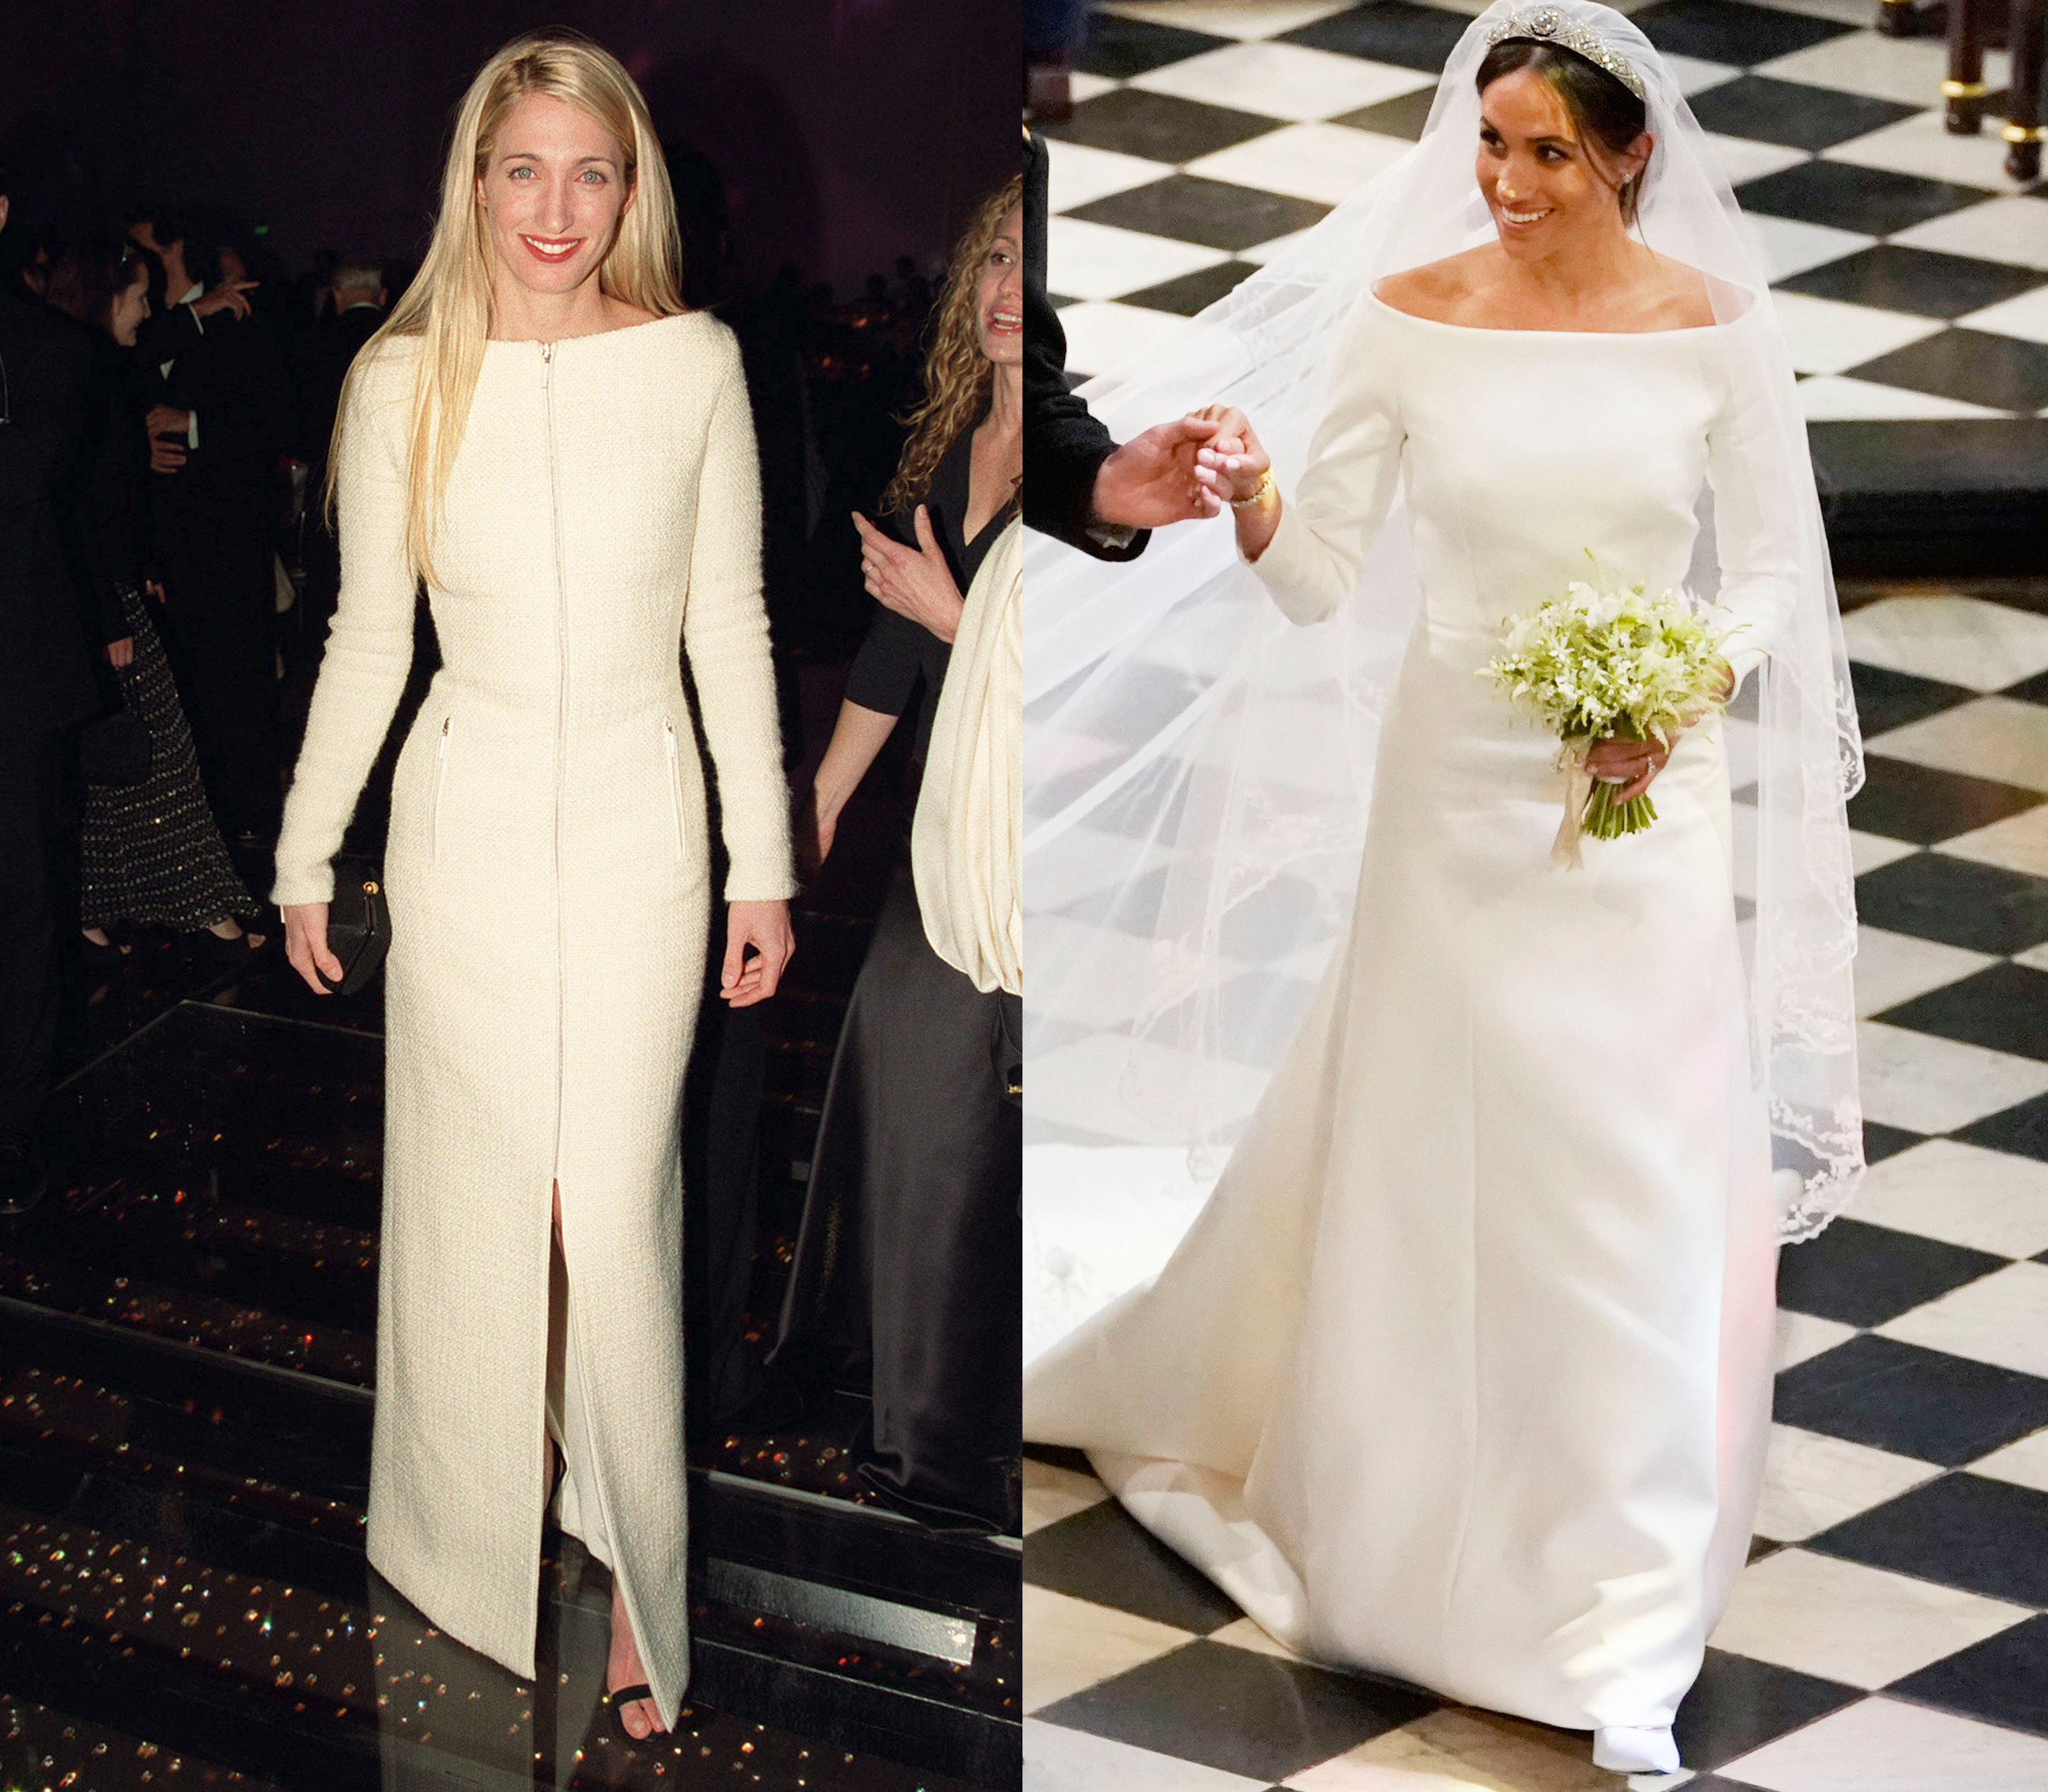 How meghan markles wedding dress pays tribute to carolyn bessette how meghan markles wedding dress pays tribute to carolyn bessette kennedy junglespirit Gallery